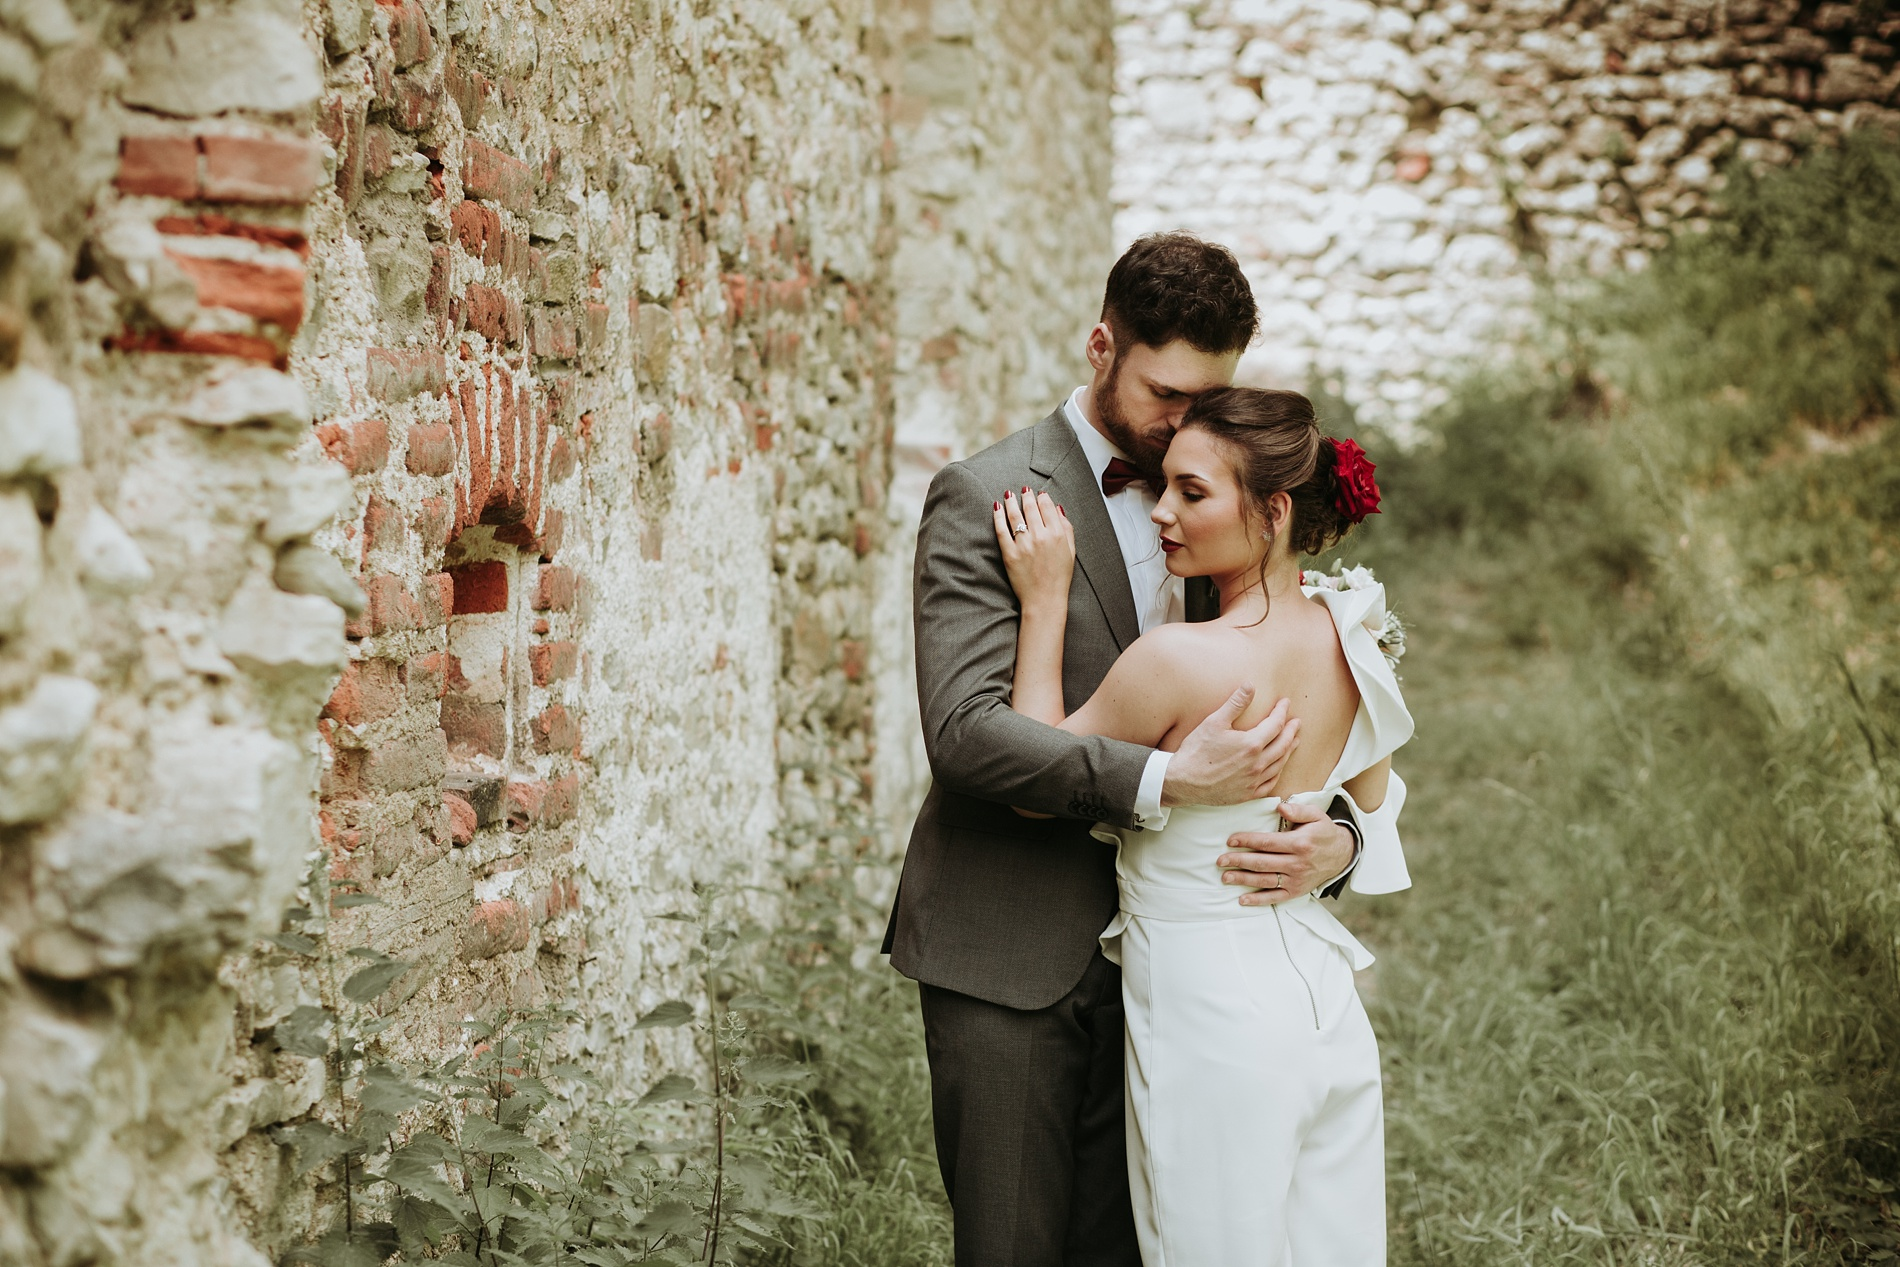 Wedding photographer Alsace France - Photographe Mariage Alsace